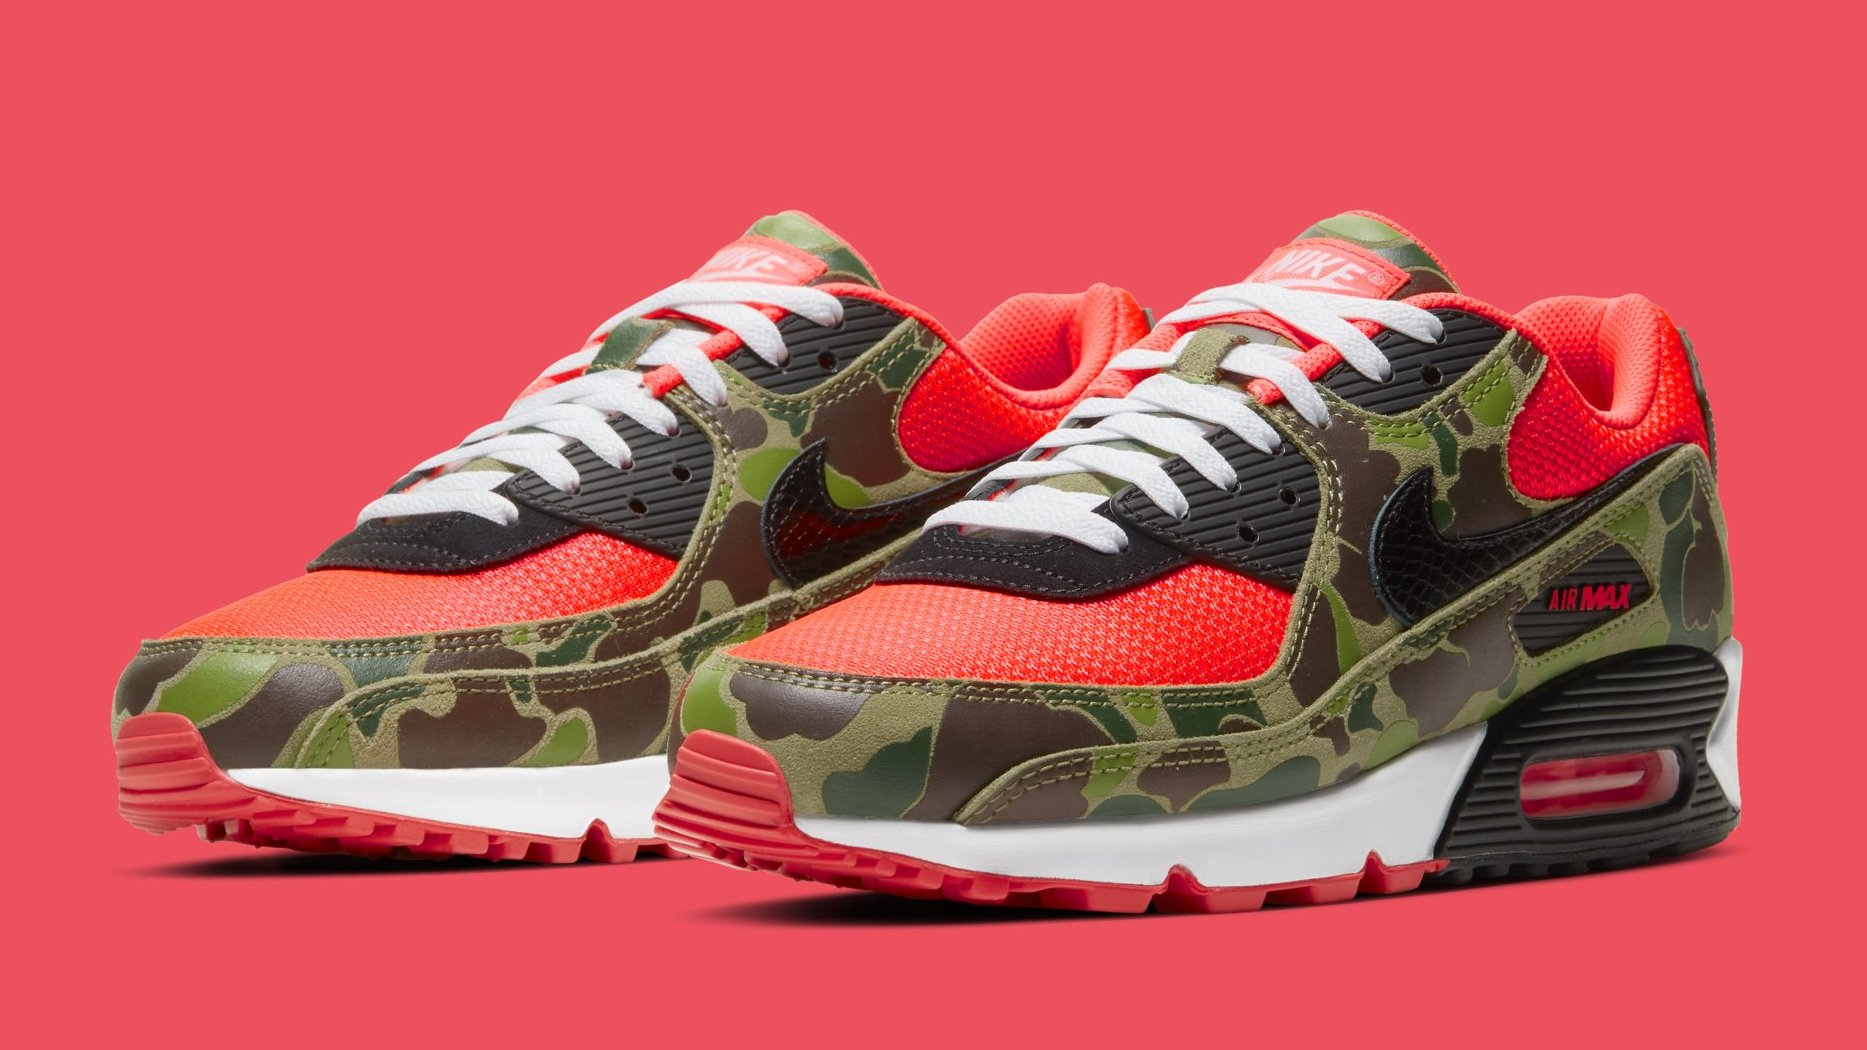 Nike Air Max 90 'Infrared Duck Camo' Release Date CW6024-600 ...